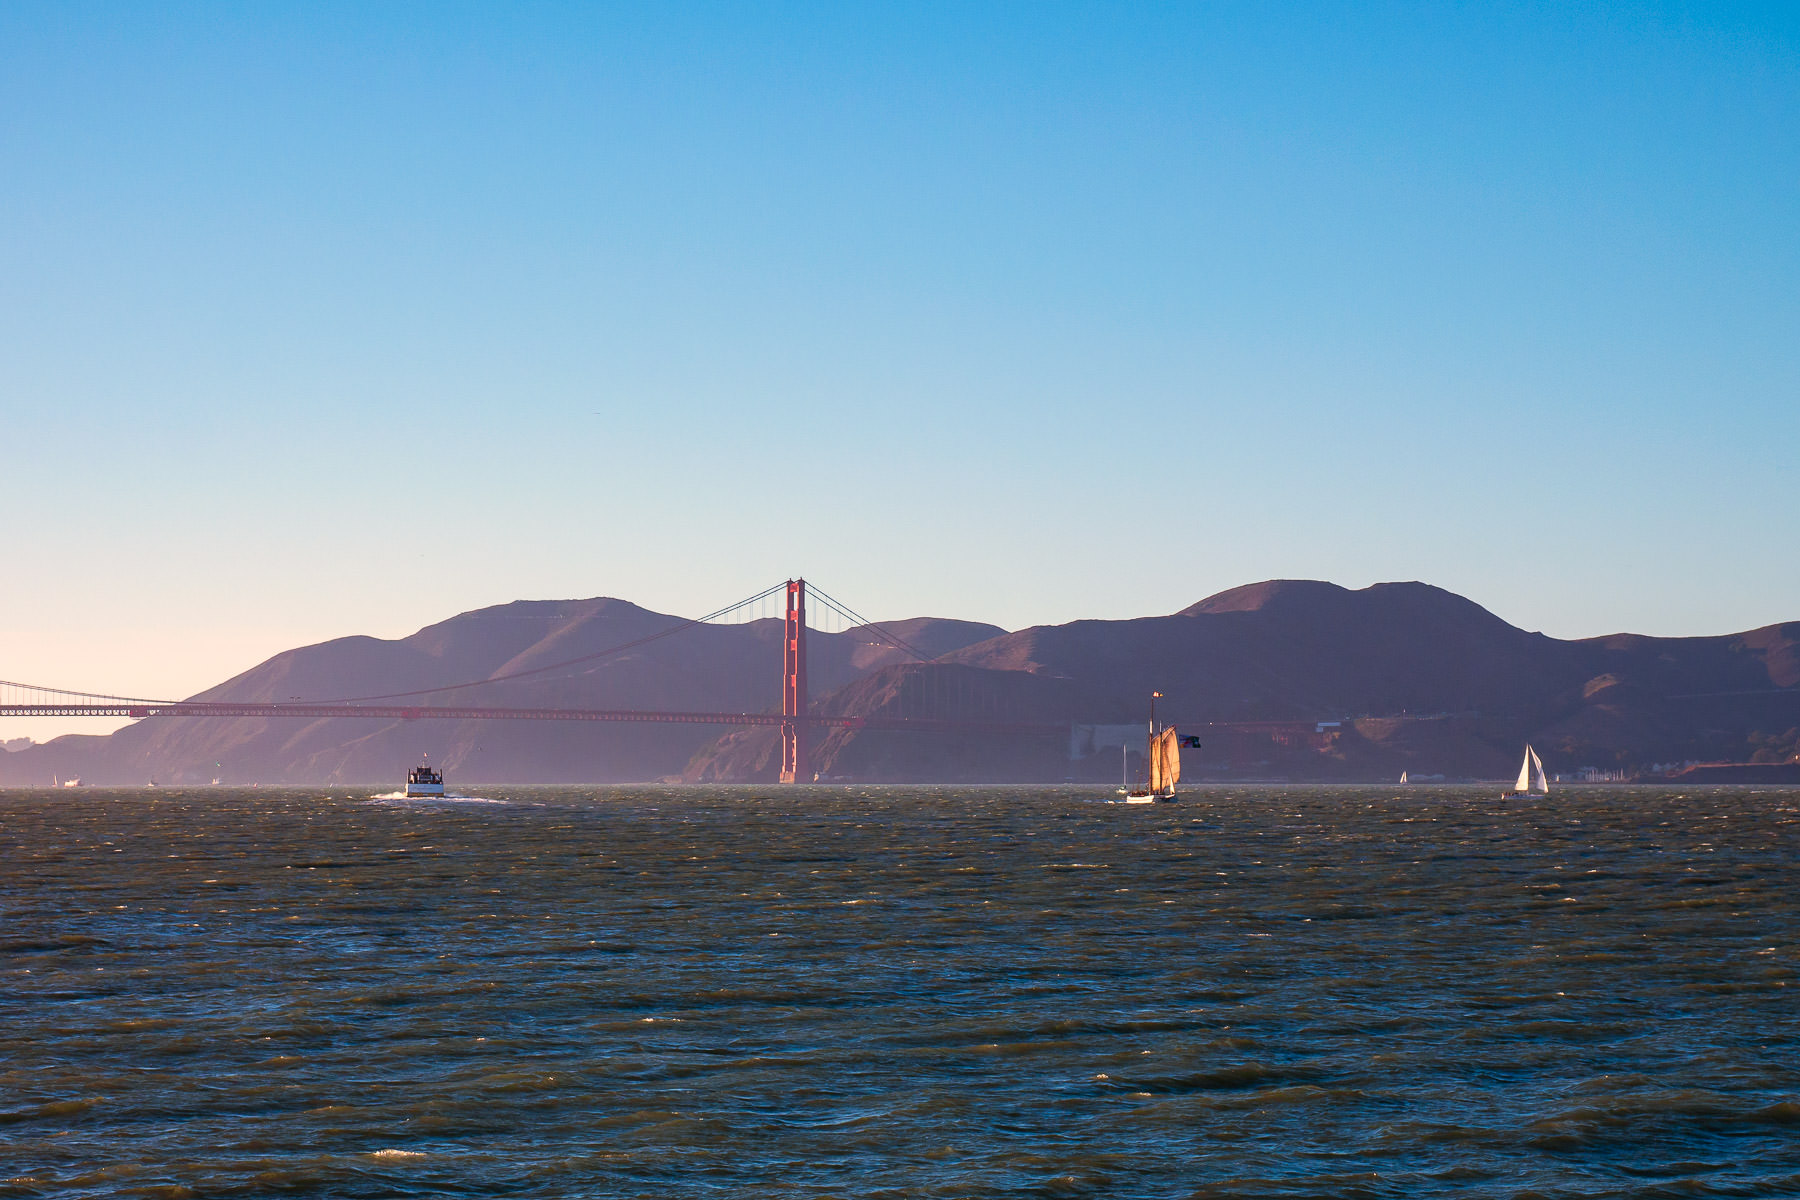 The sun begins to set on San Francisco Bay and the Golden Gate Bridge.